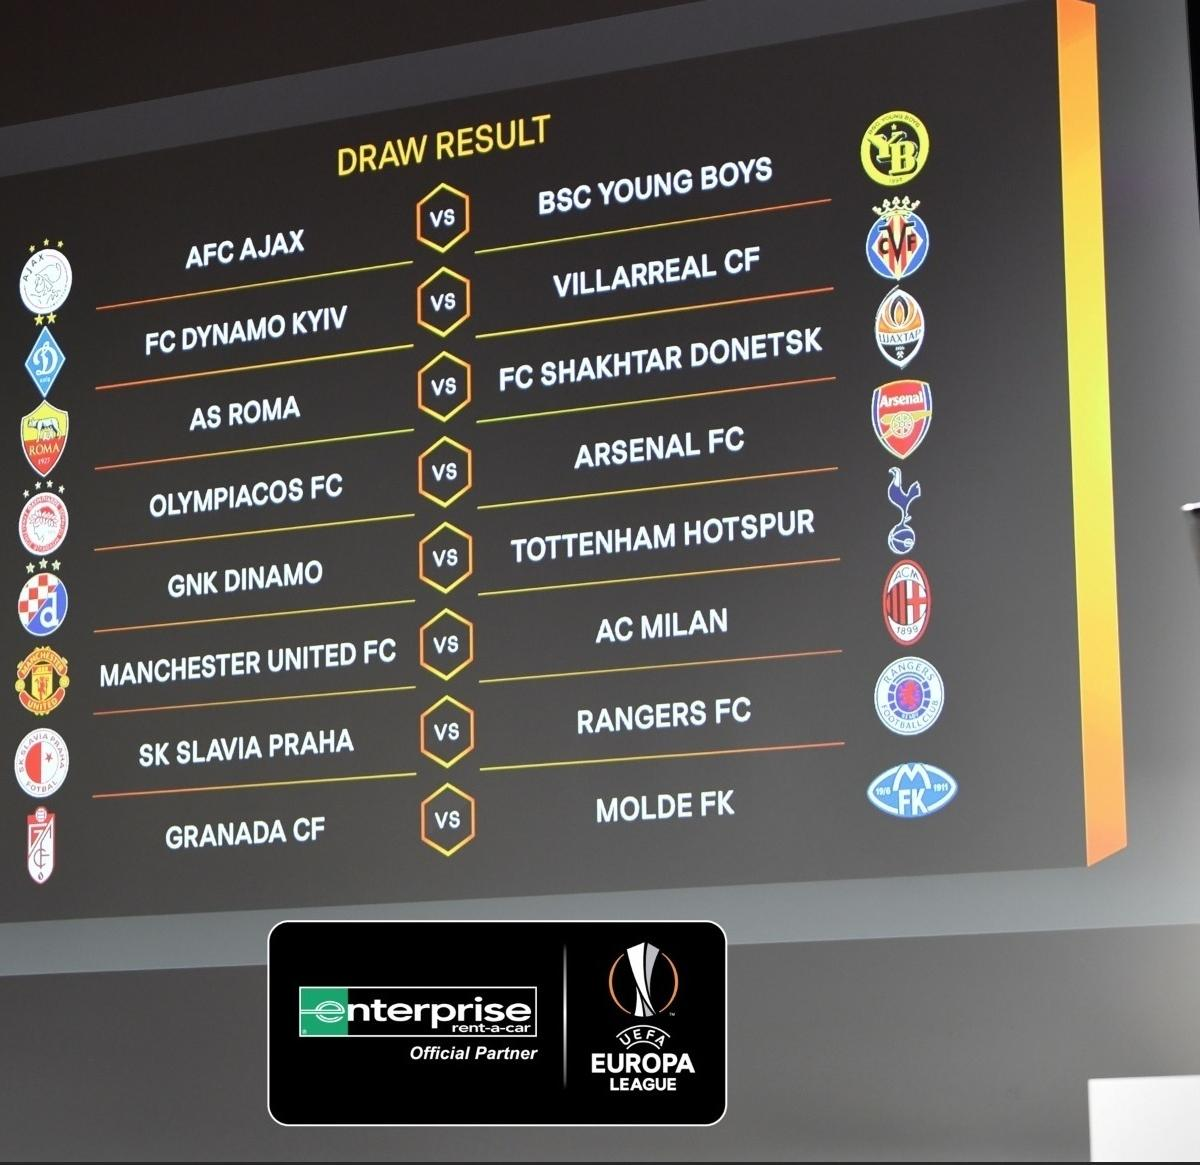 Europa League 2021: Power Ranking Every Team in the Round of 16